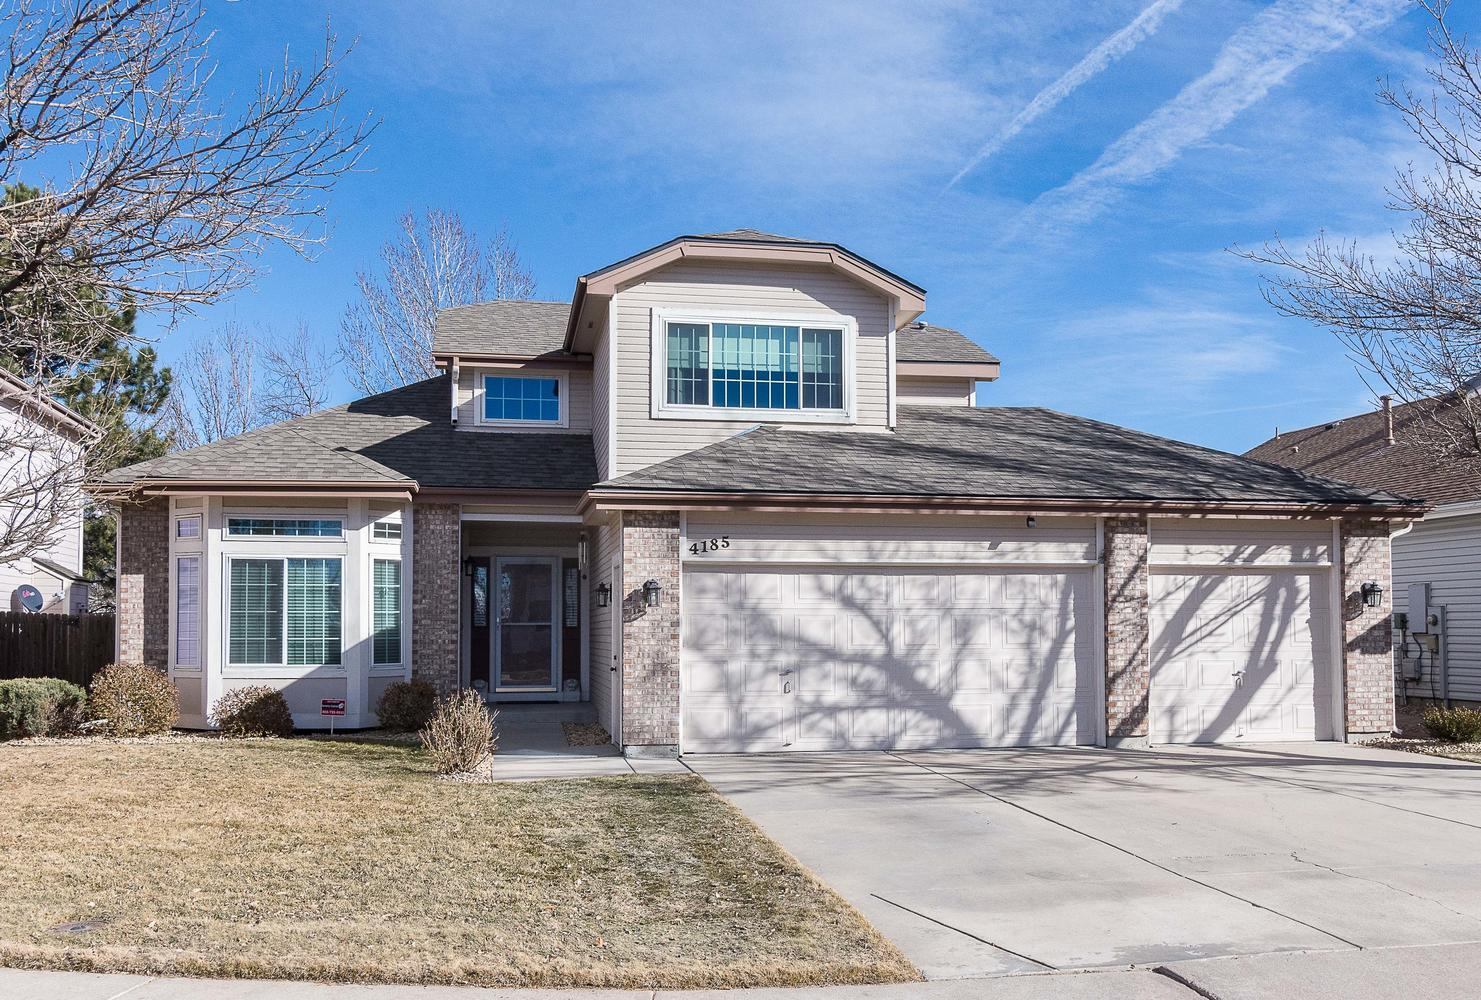 home for sale summit park aurora co 80014